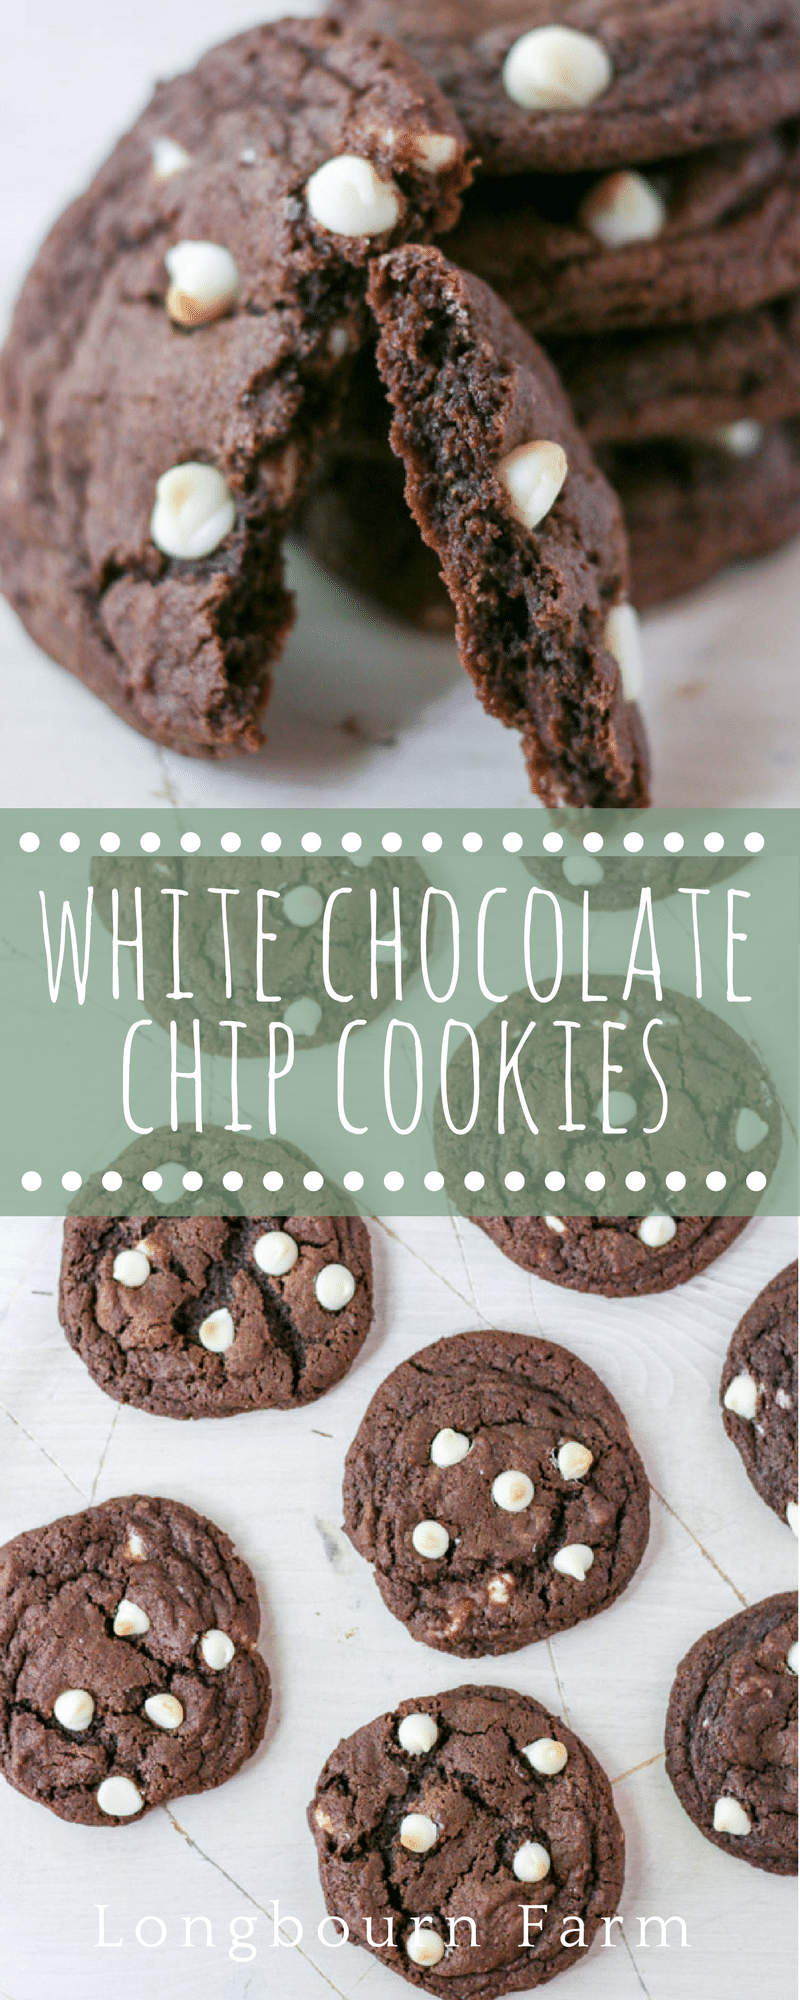 These white chocolate chip cookies are rich and decadent with a silky smooth texture! They are easy to make with ingredients you are sure to have on hand! via @longbournfarm